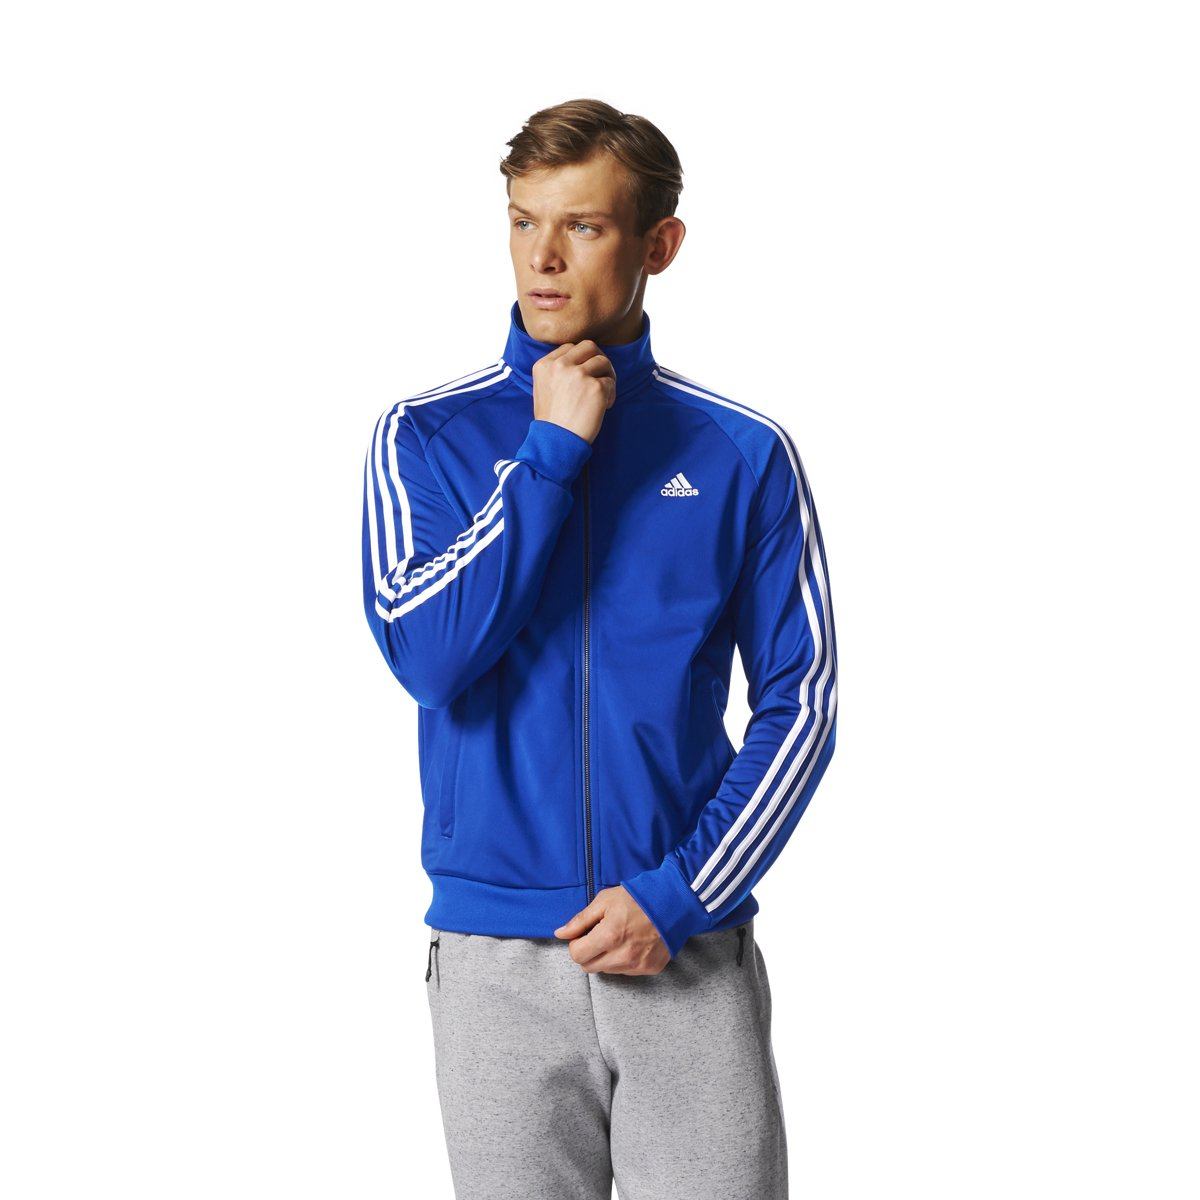 adidas Essentials 3S Tricot Track Jacket Men's All Sports S Collegiate Royal-White by adidas (Image #3)